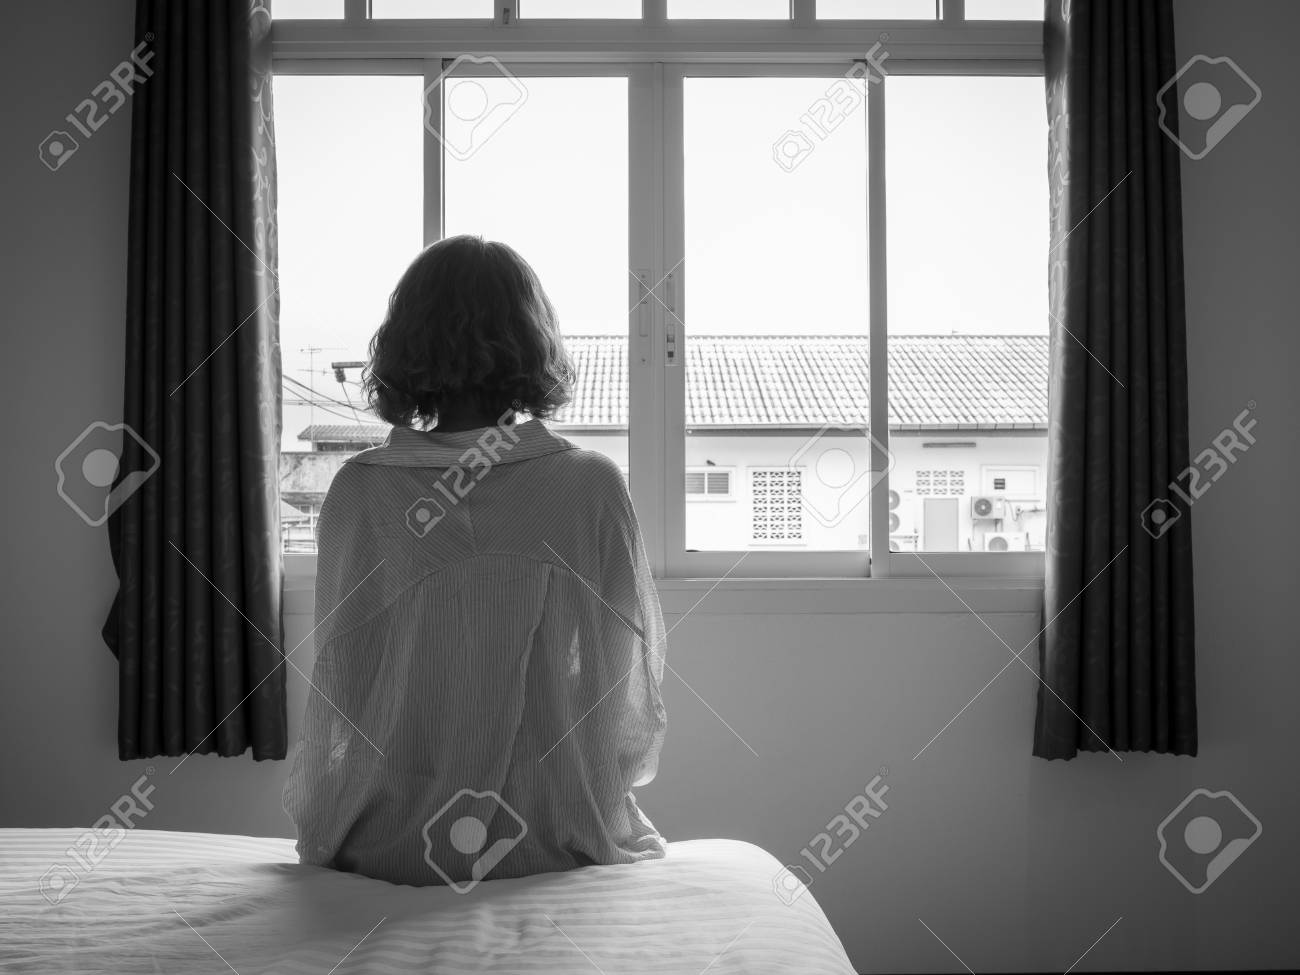 106546980 woman short hair sitting on the white bed in hotel room lonely woman looking out the window alone in jpg